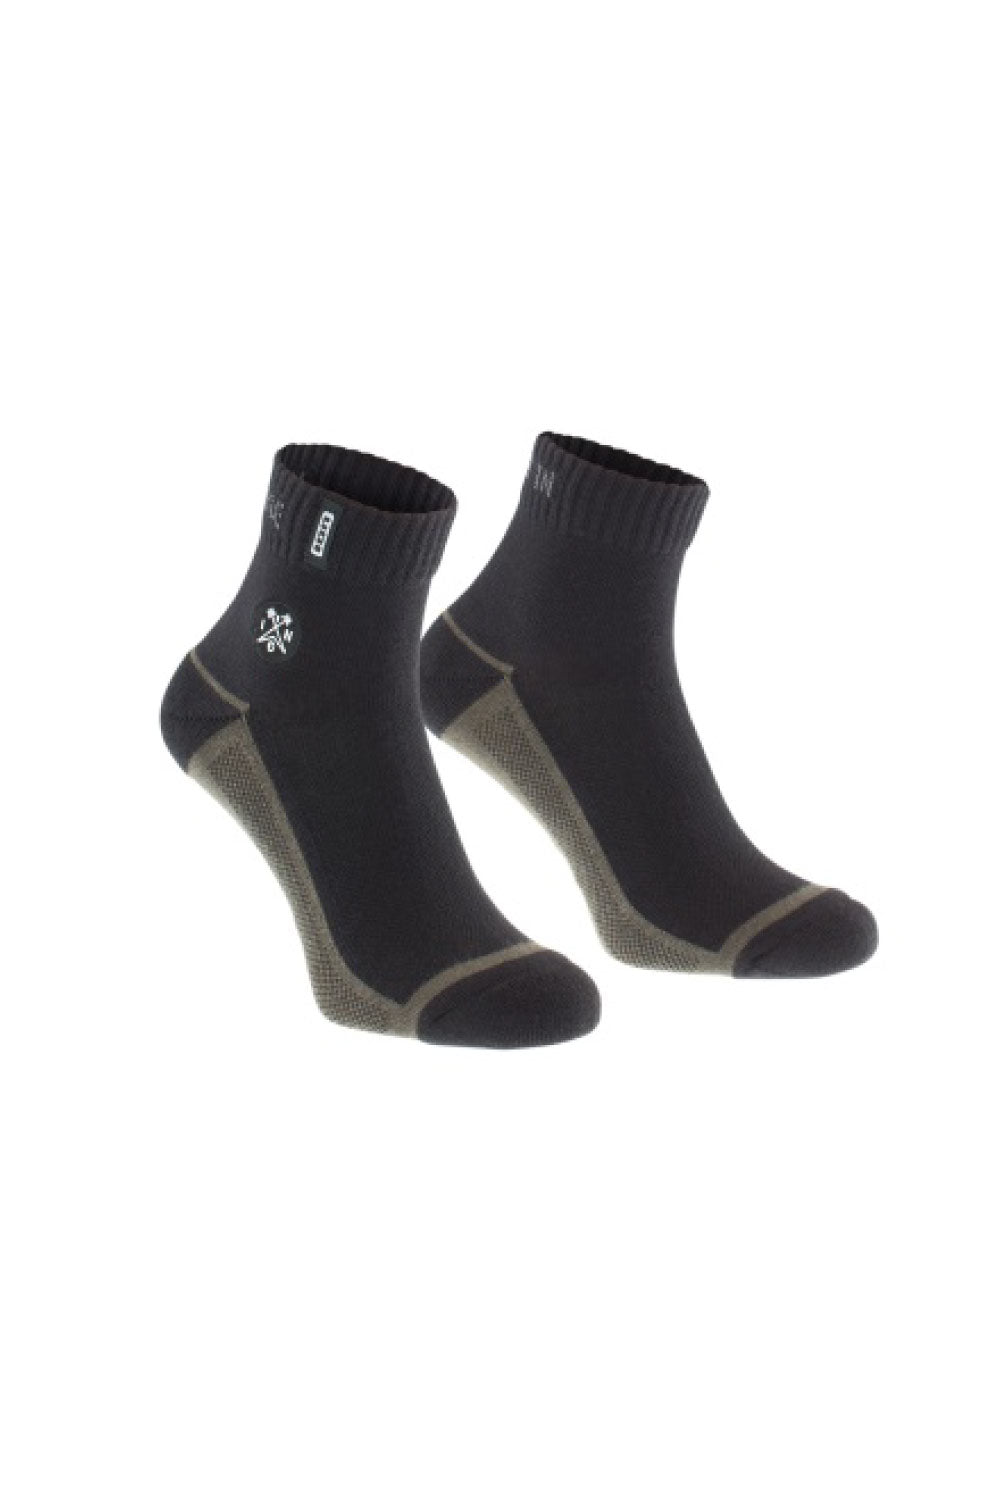 ION 2020 Paze MTB Socks